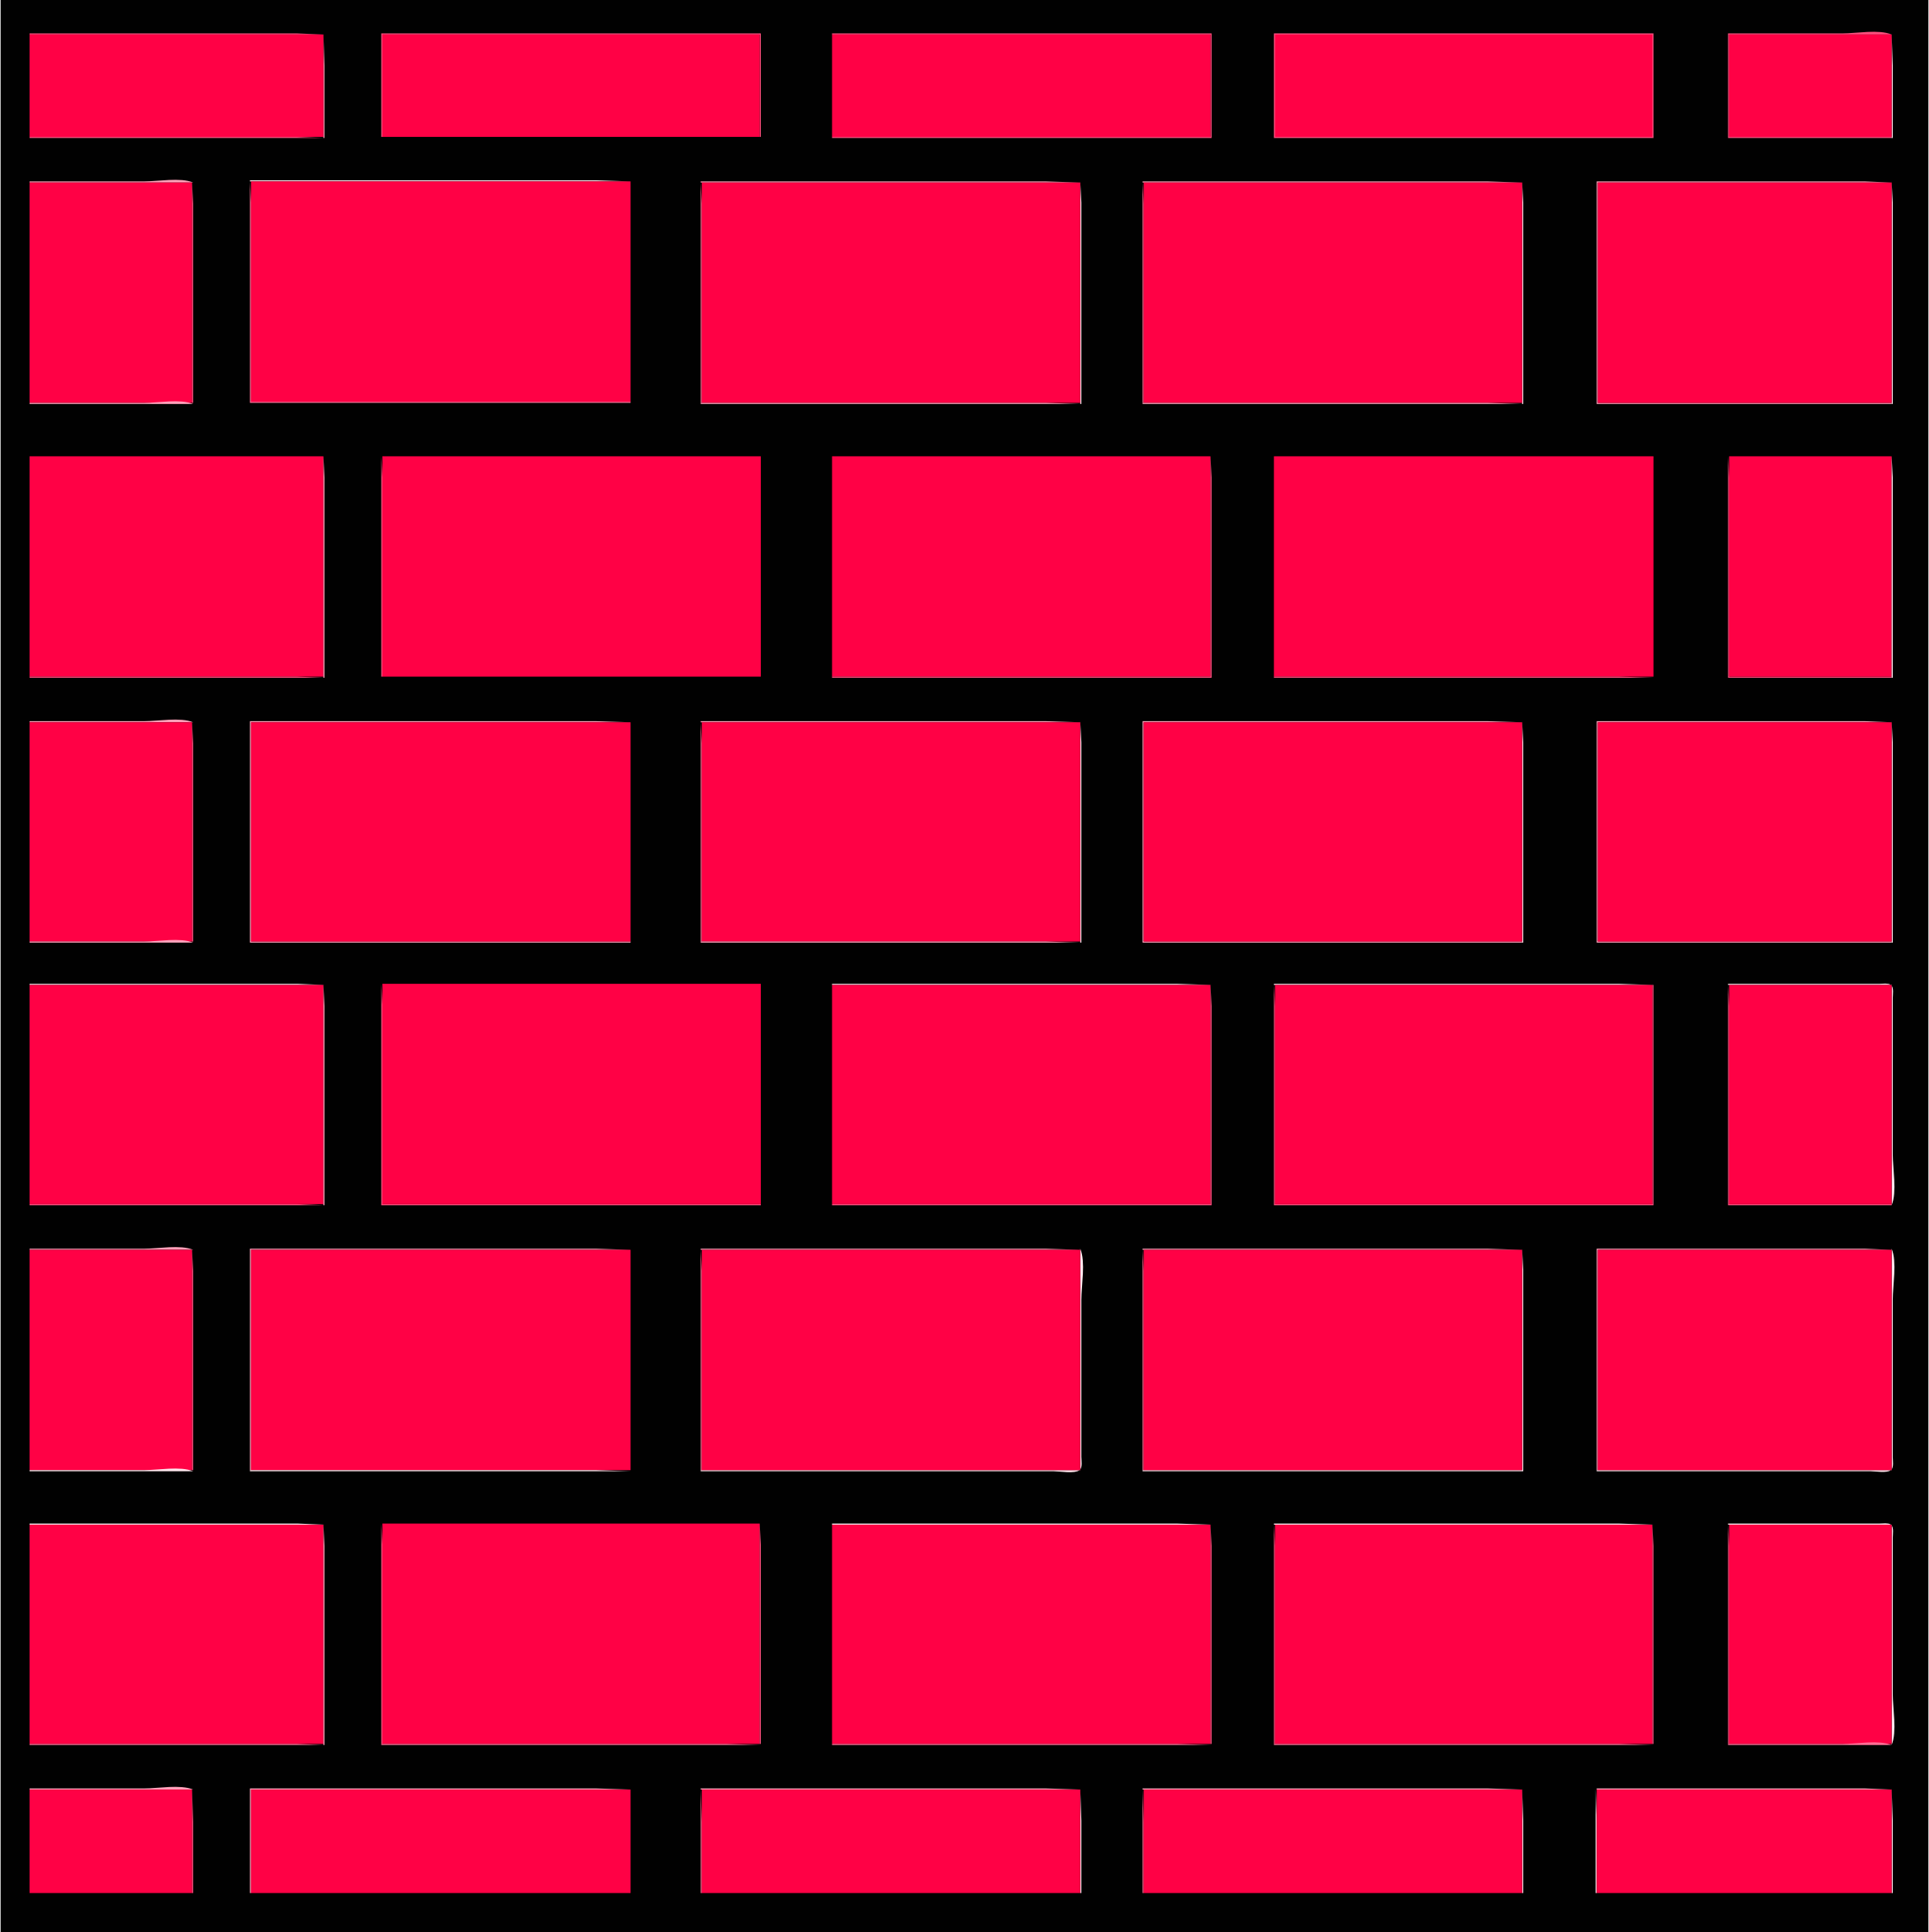 Red brick wall by IslandVibz